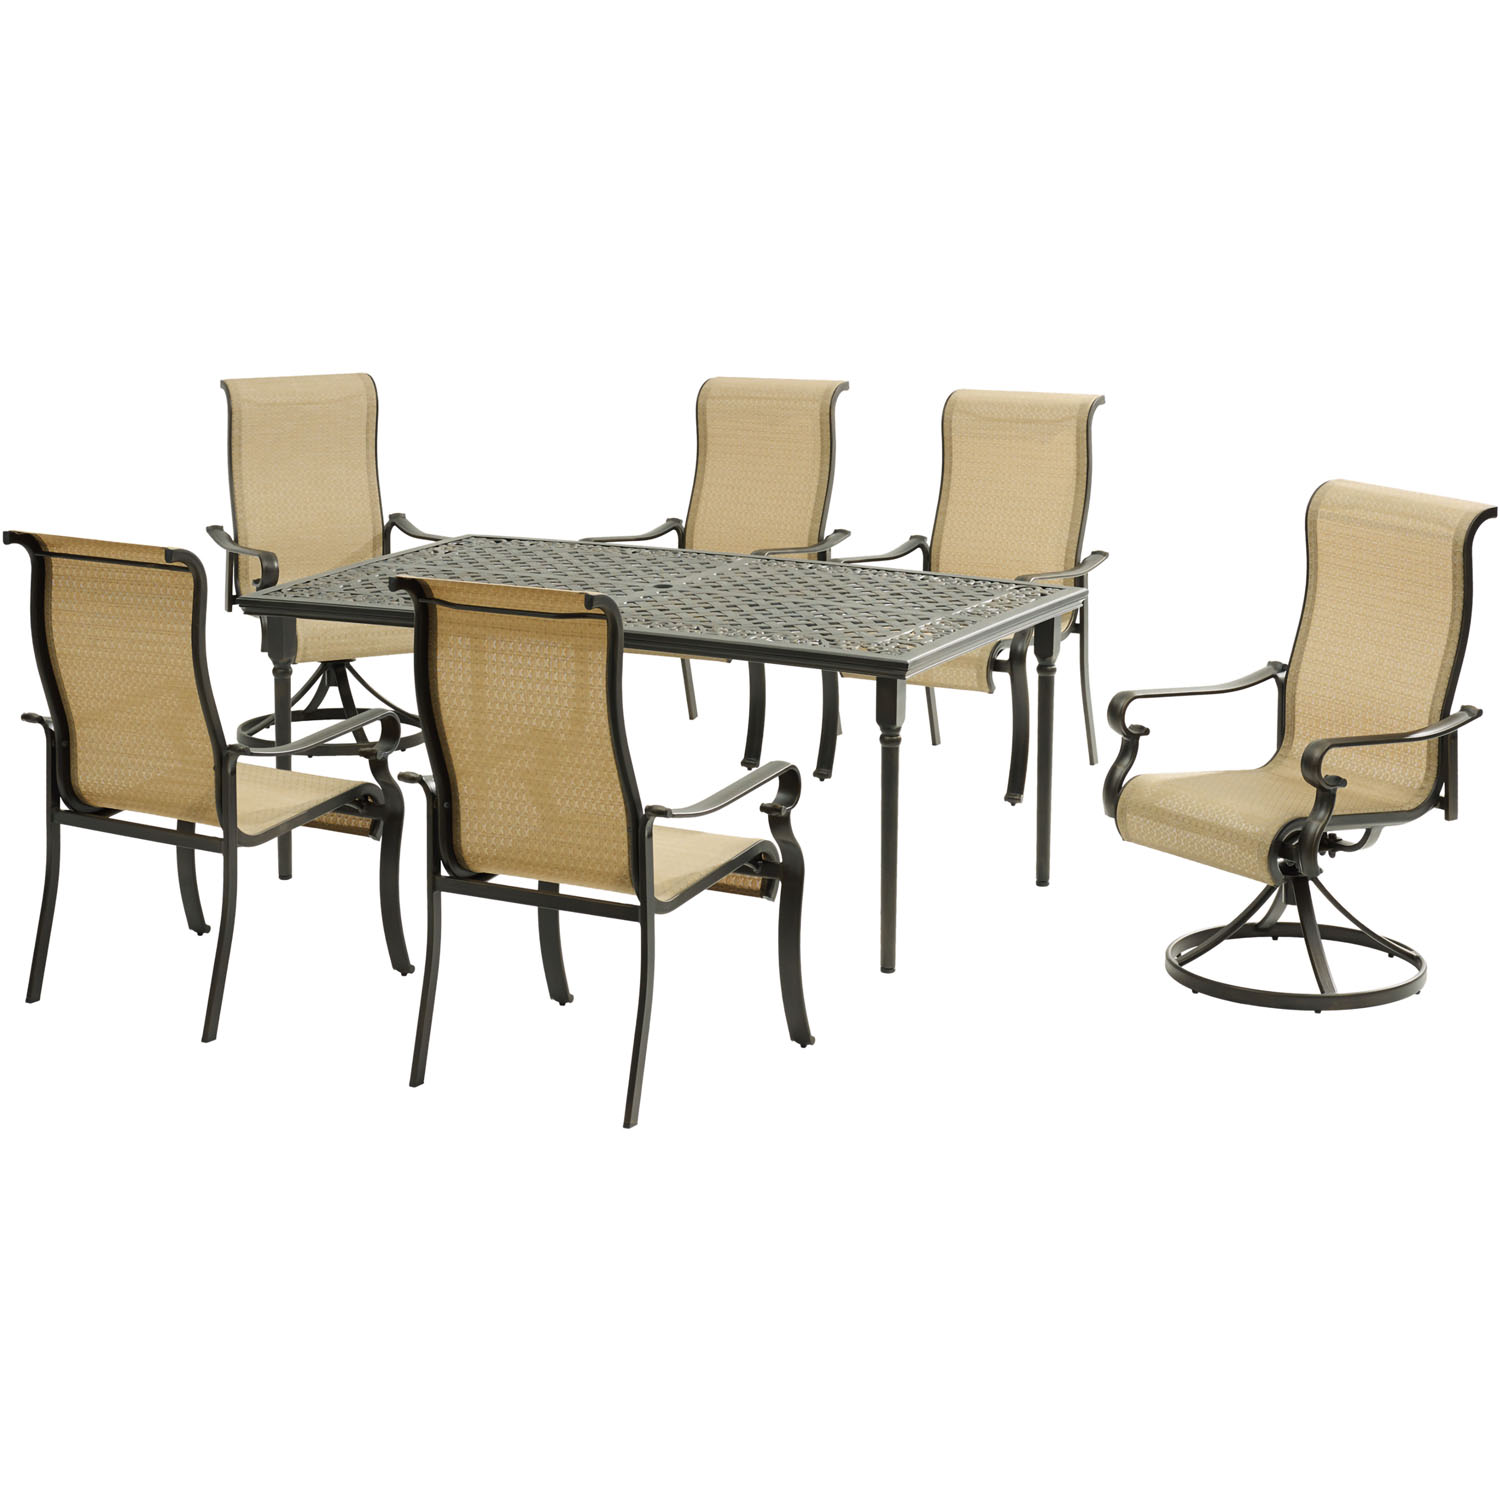 "Hanover Brigantine 7-Piece Dining Set with a 40"" x 70"" Cast-Top Dining Table, 2 Sling Swivel Rockers, and 4 Sling Dining Chairs"